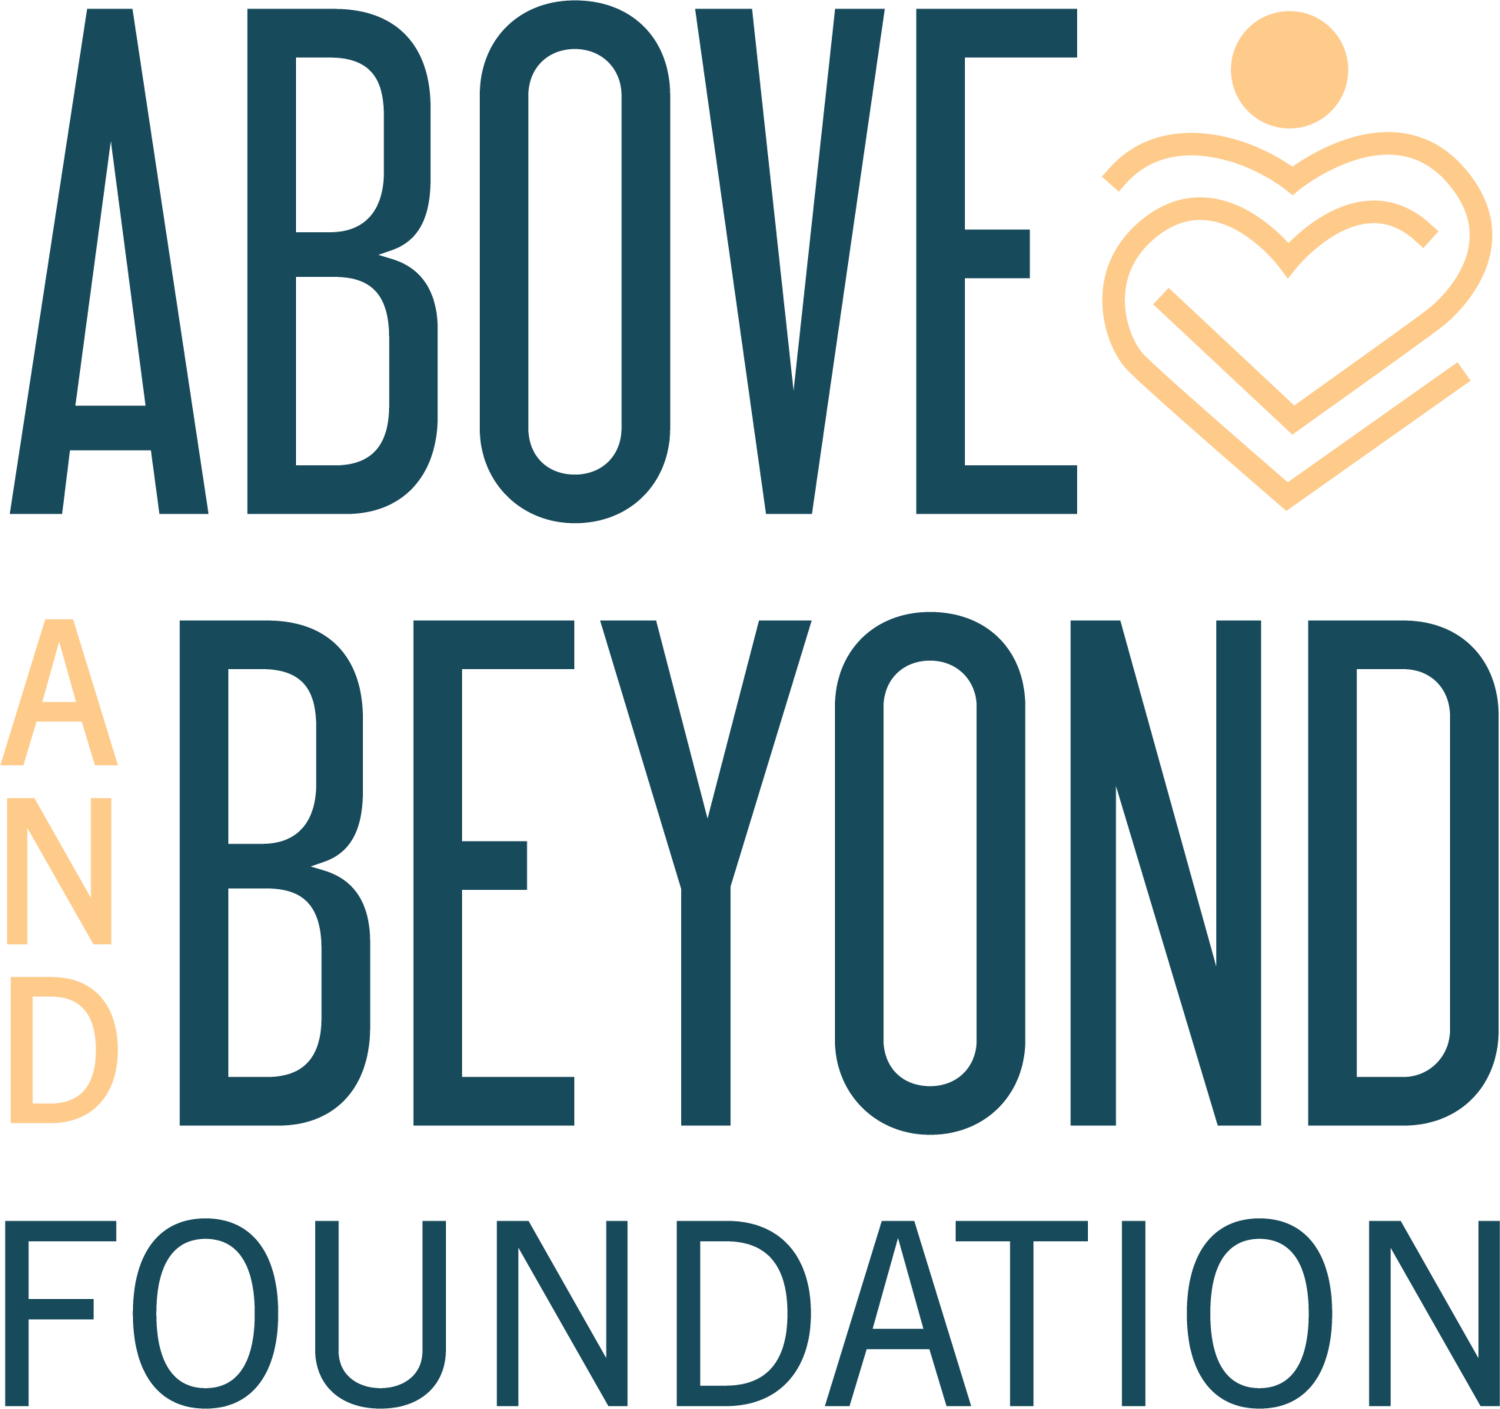 The Above & Beyond Foundation